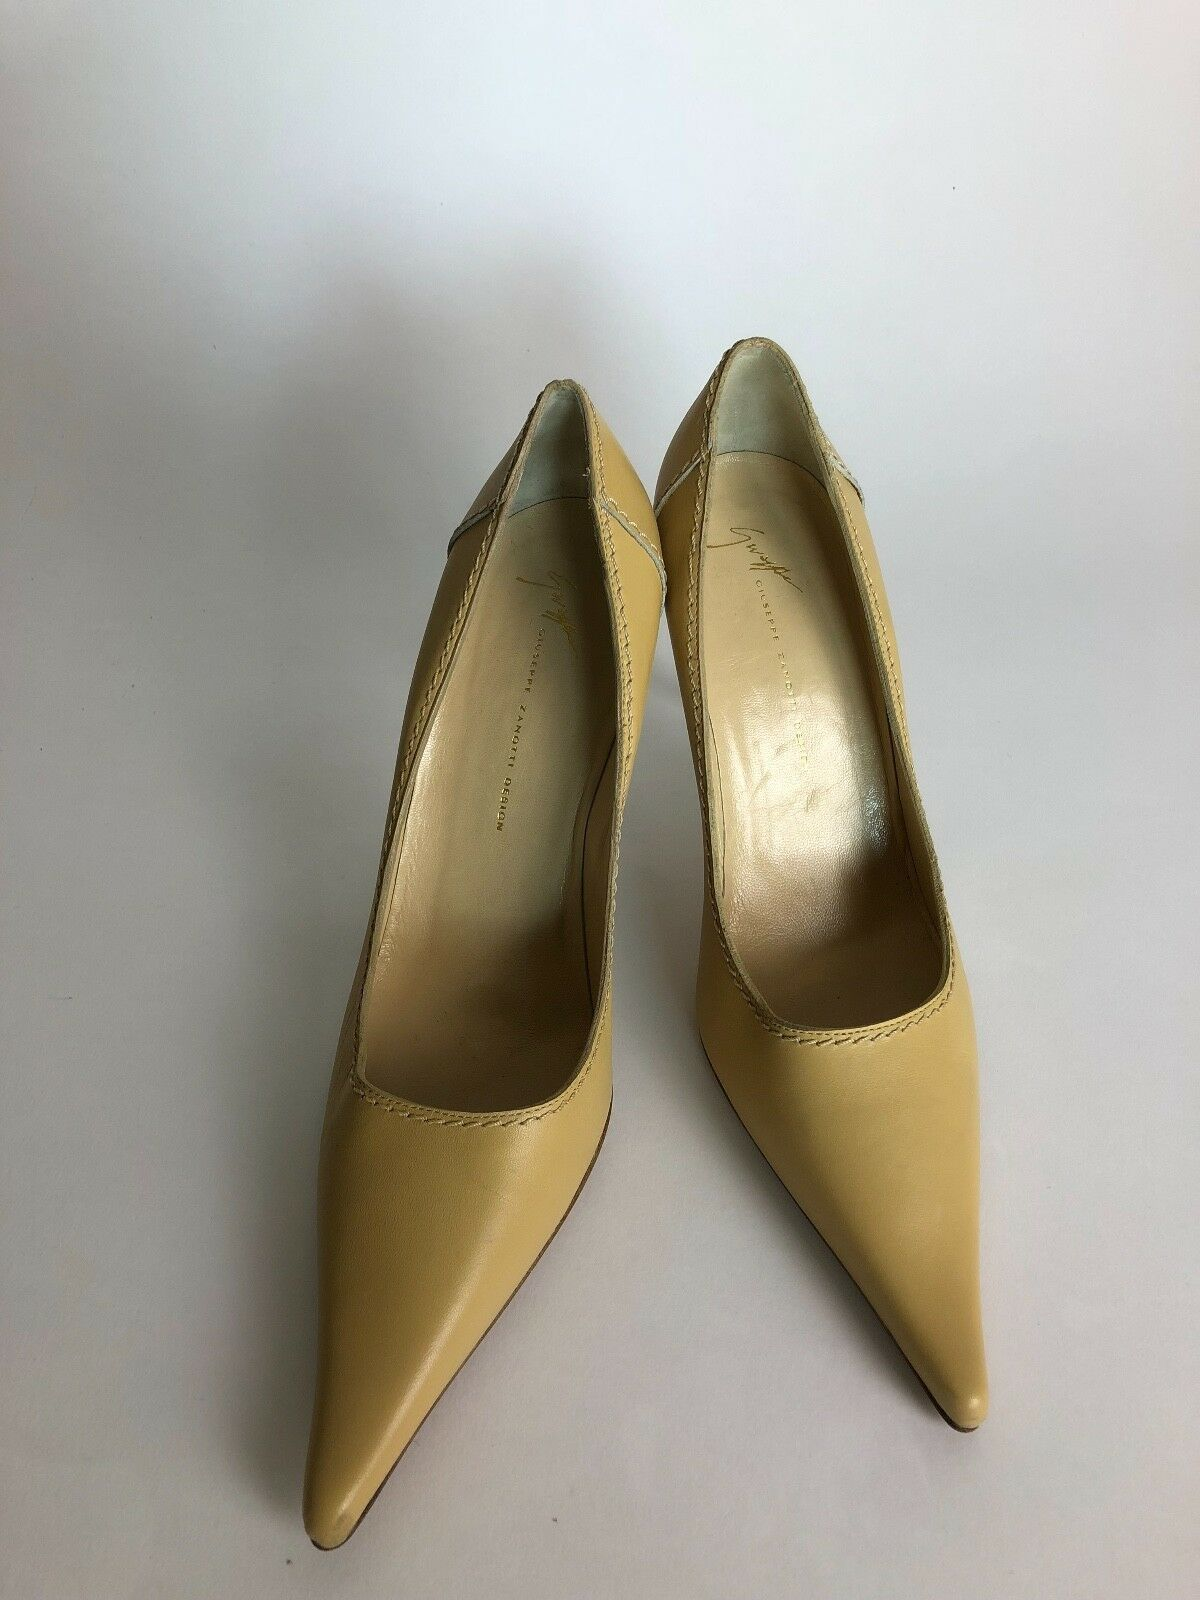 Guiseppe Zanotti Beige Tan Pointed Toe Pump Heels US Size 9 GREAT CONDITION